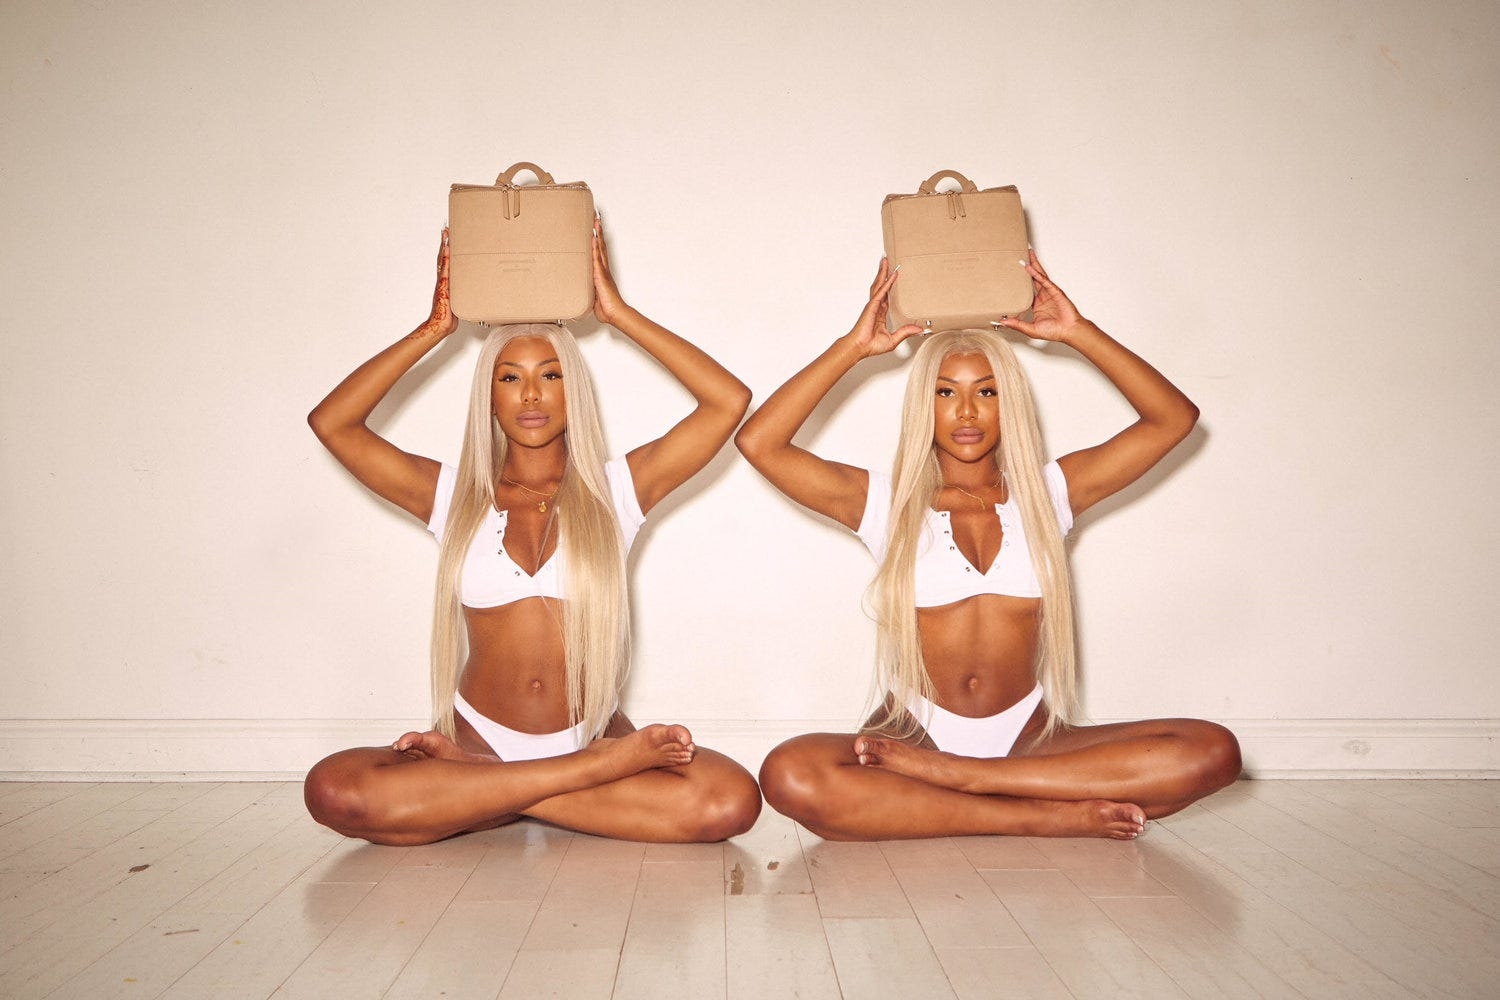 Legs Shannade Clermont nudes (61 pictures) Fappening, Instagram, butt